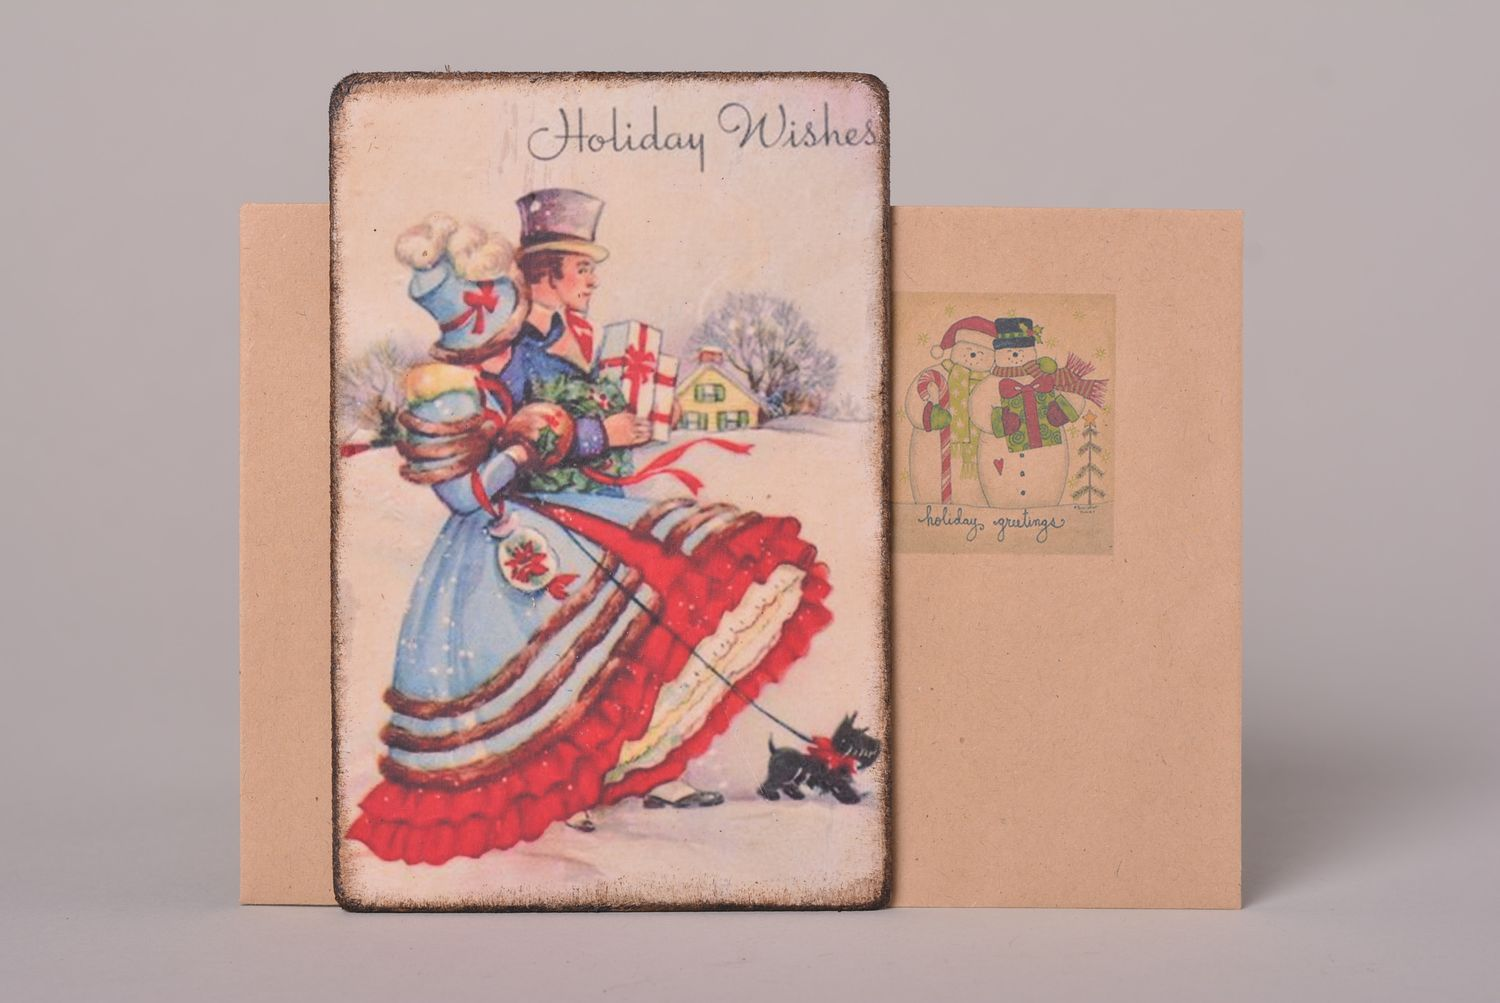 Beautiful handmade greeting cards Christmas card vintage post card small gifts photo 1